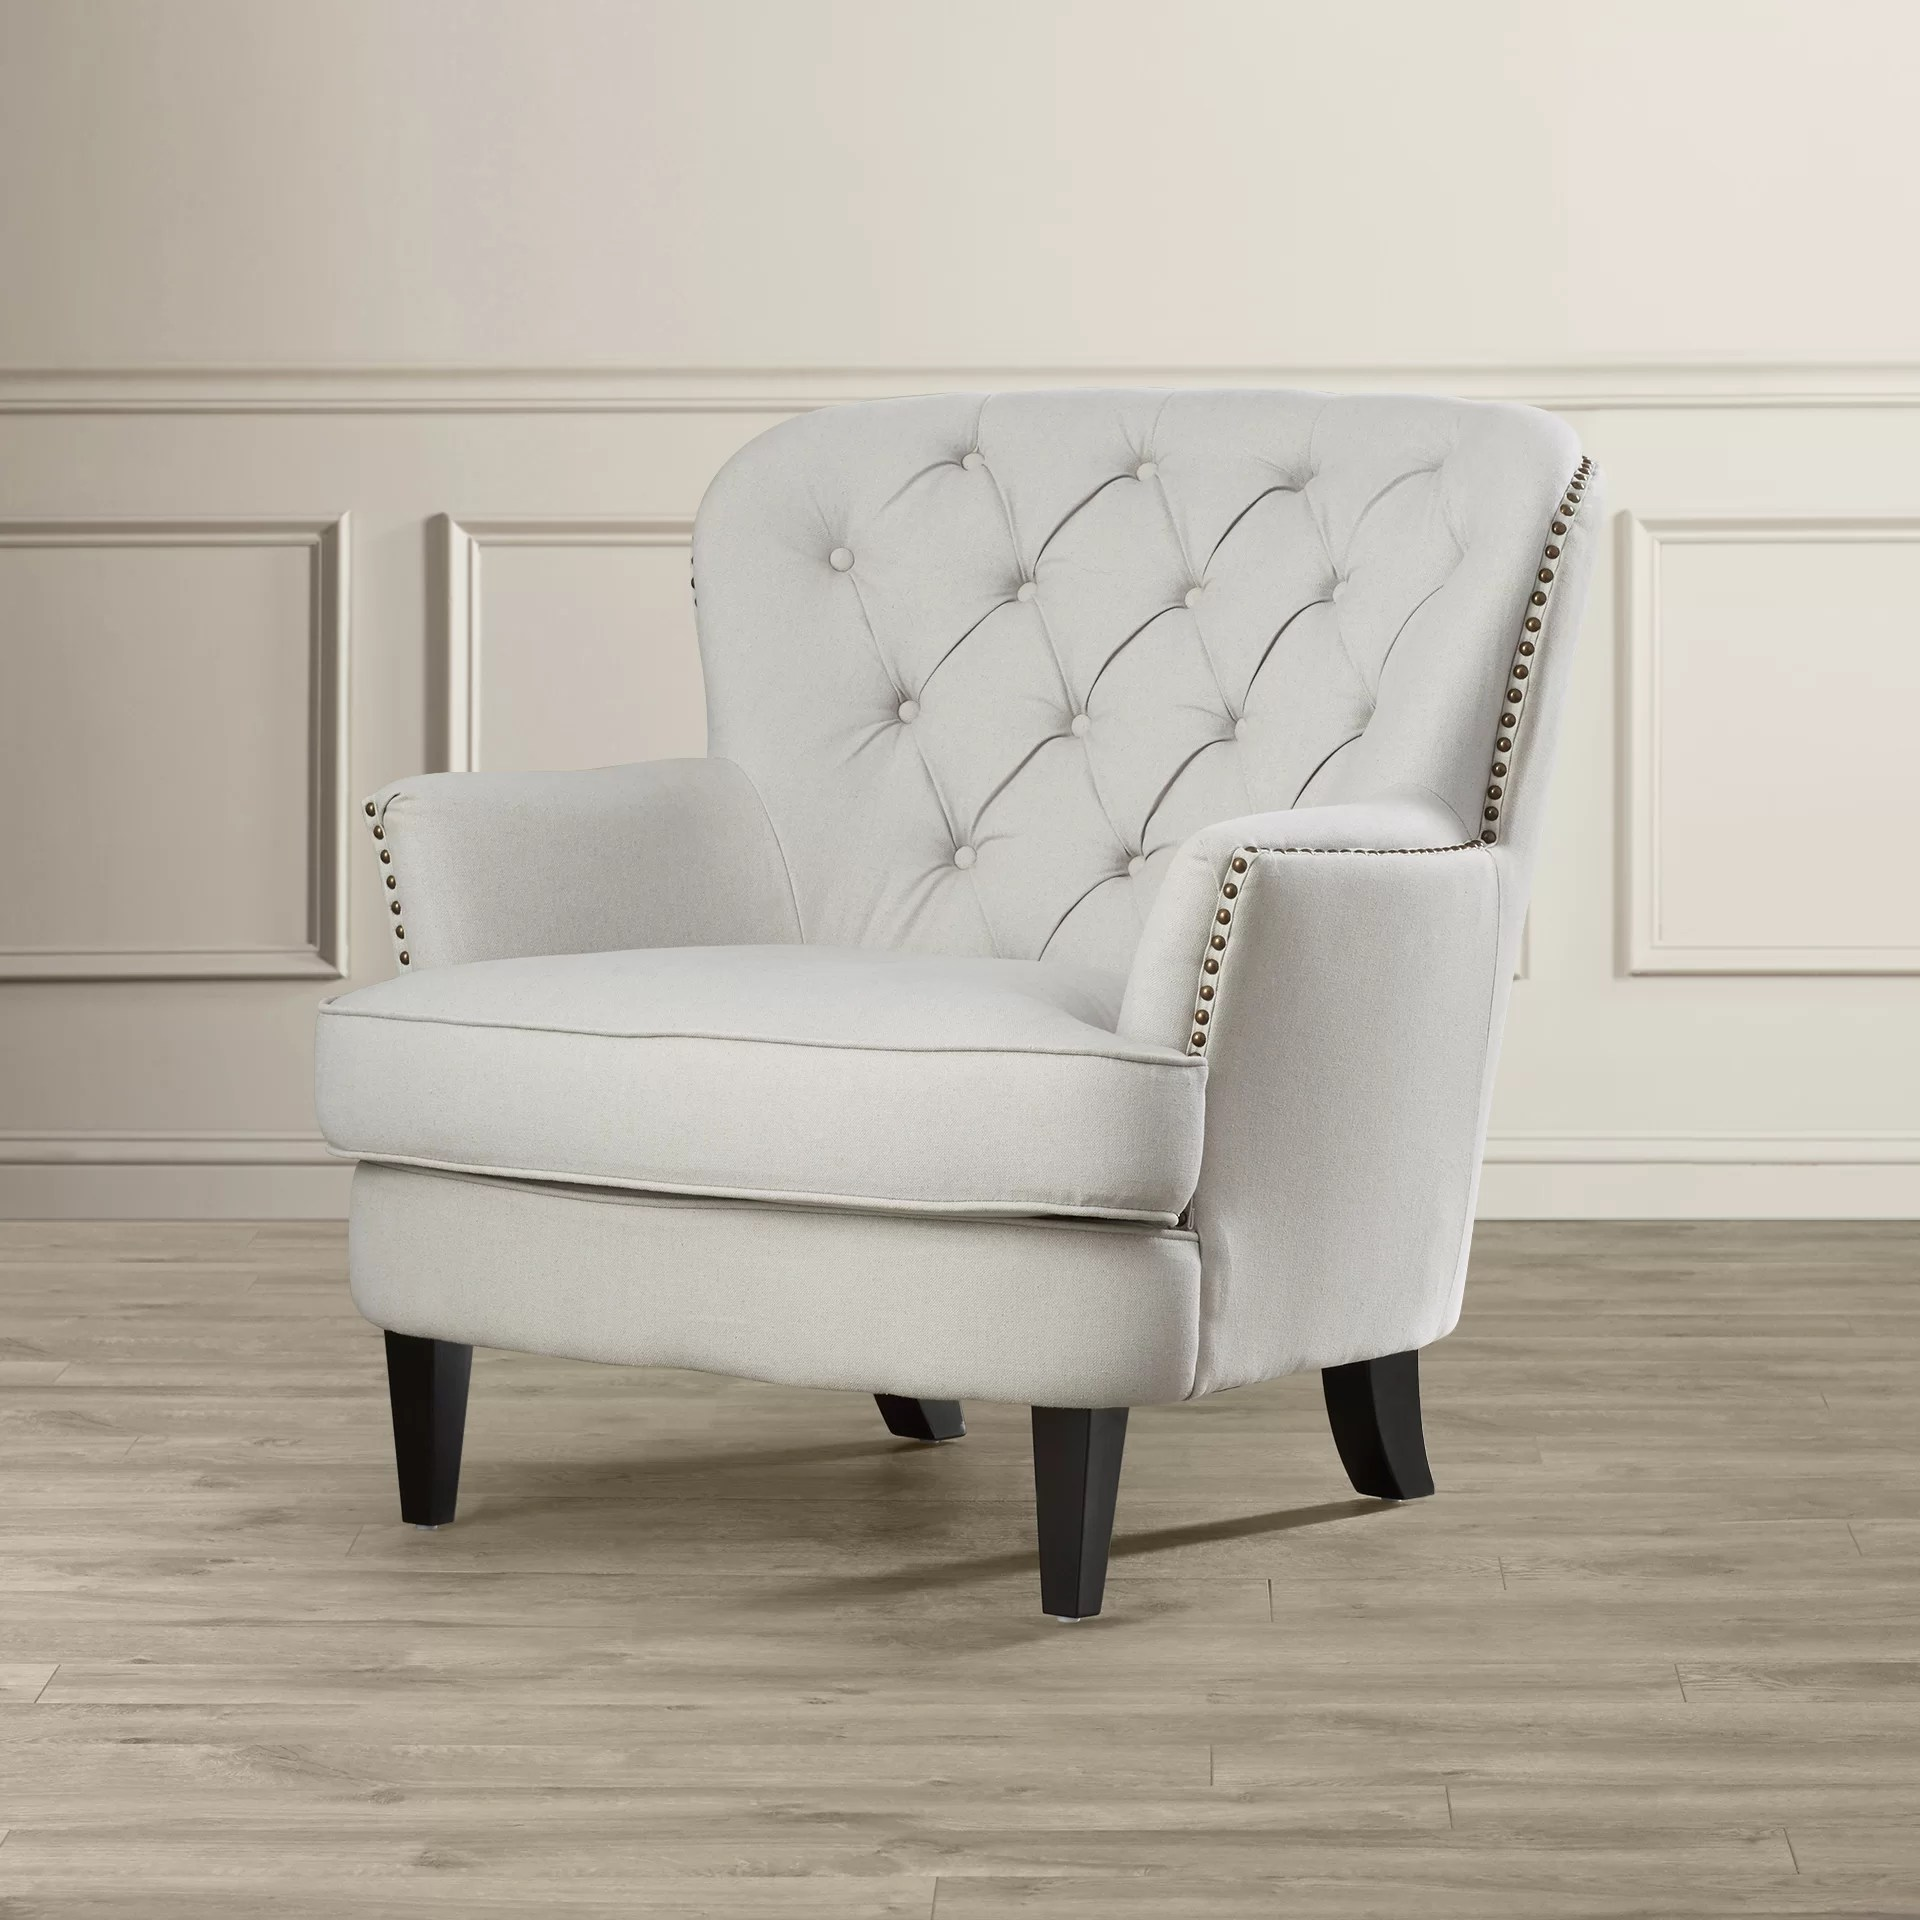 Upholstered Club Chair House Of Hampton Greene Tufted Upholstered Linen Club